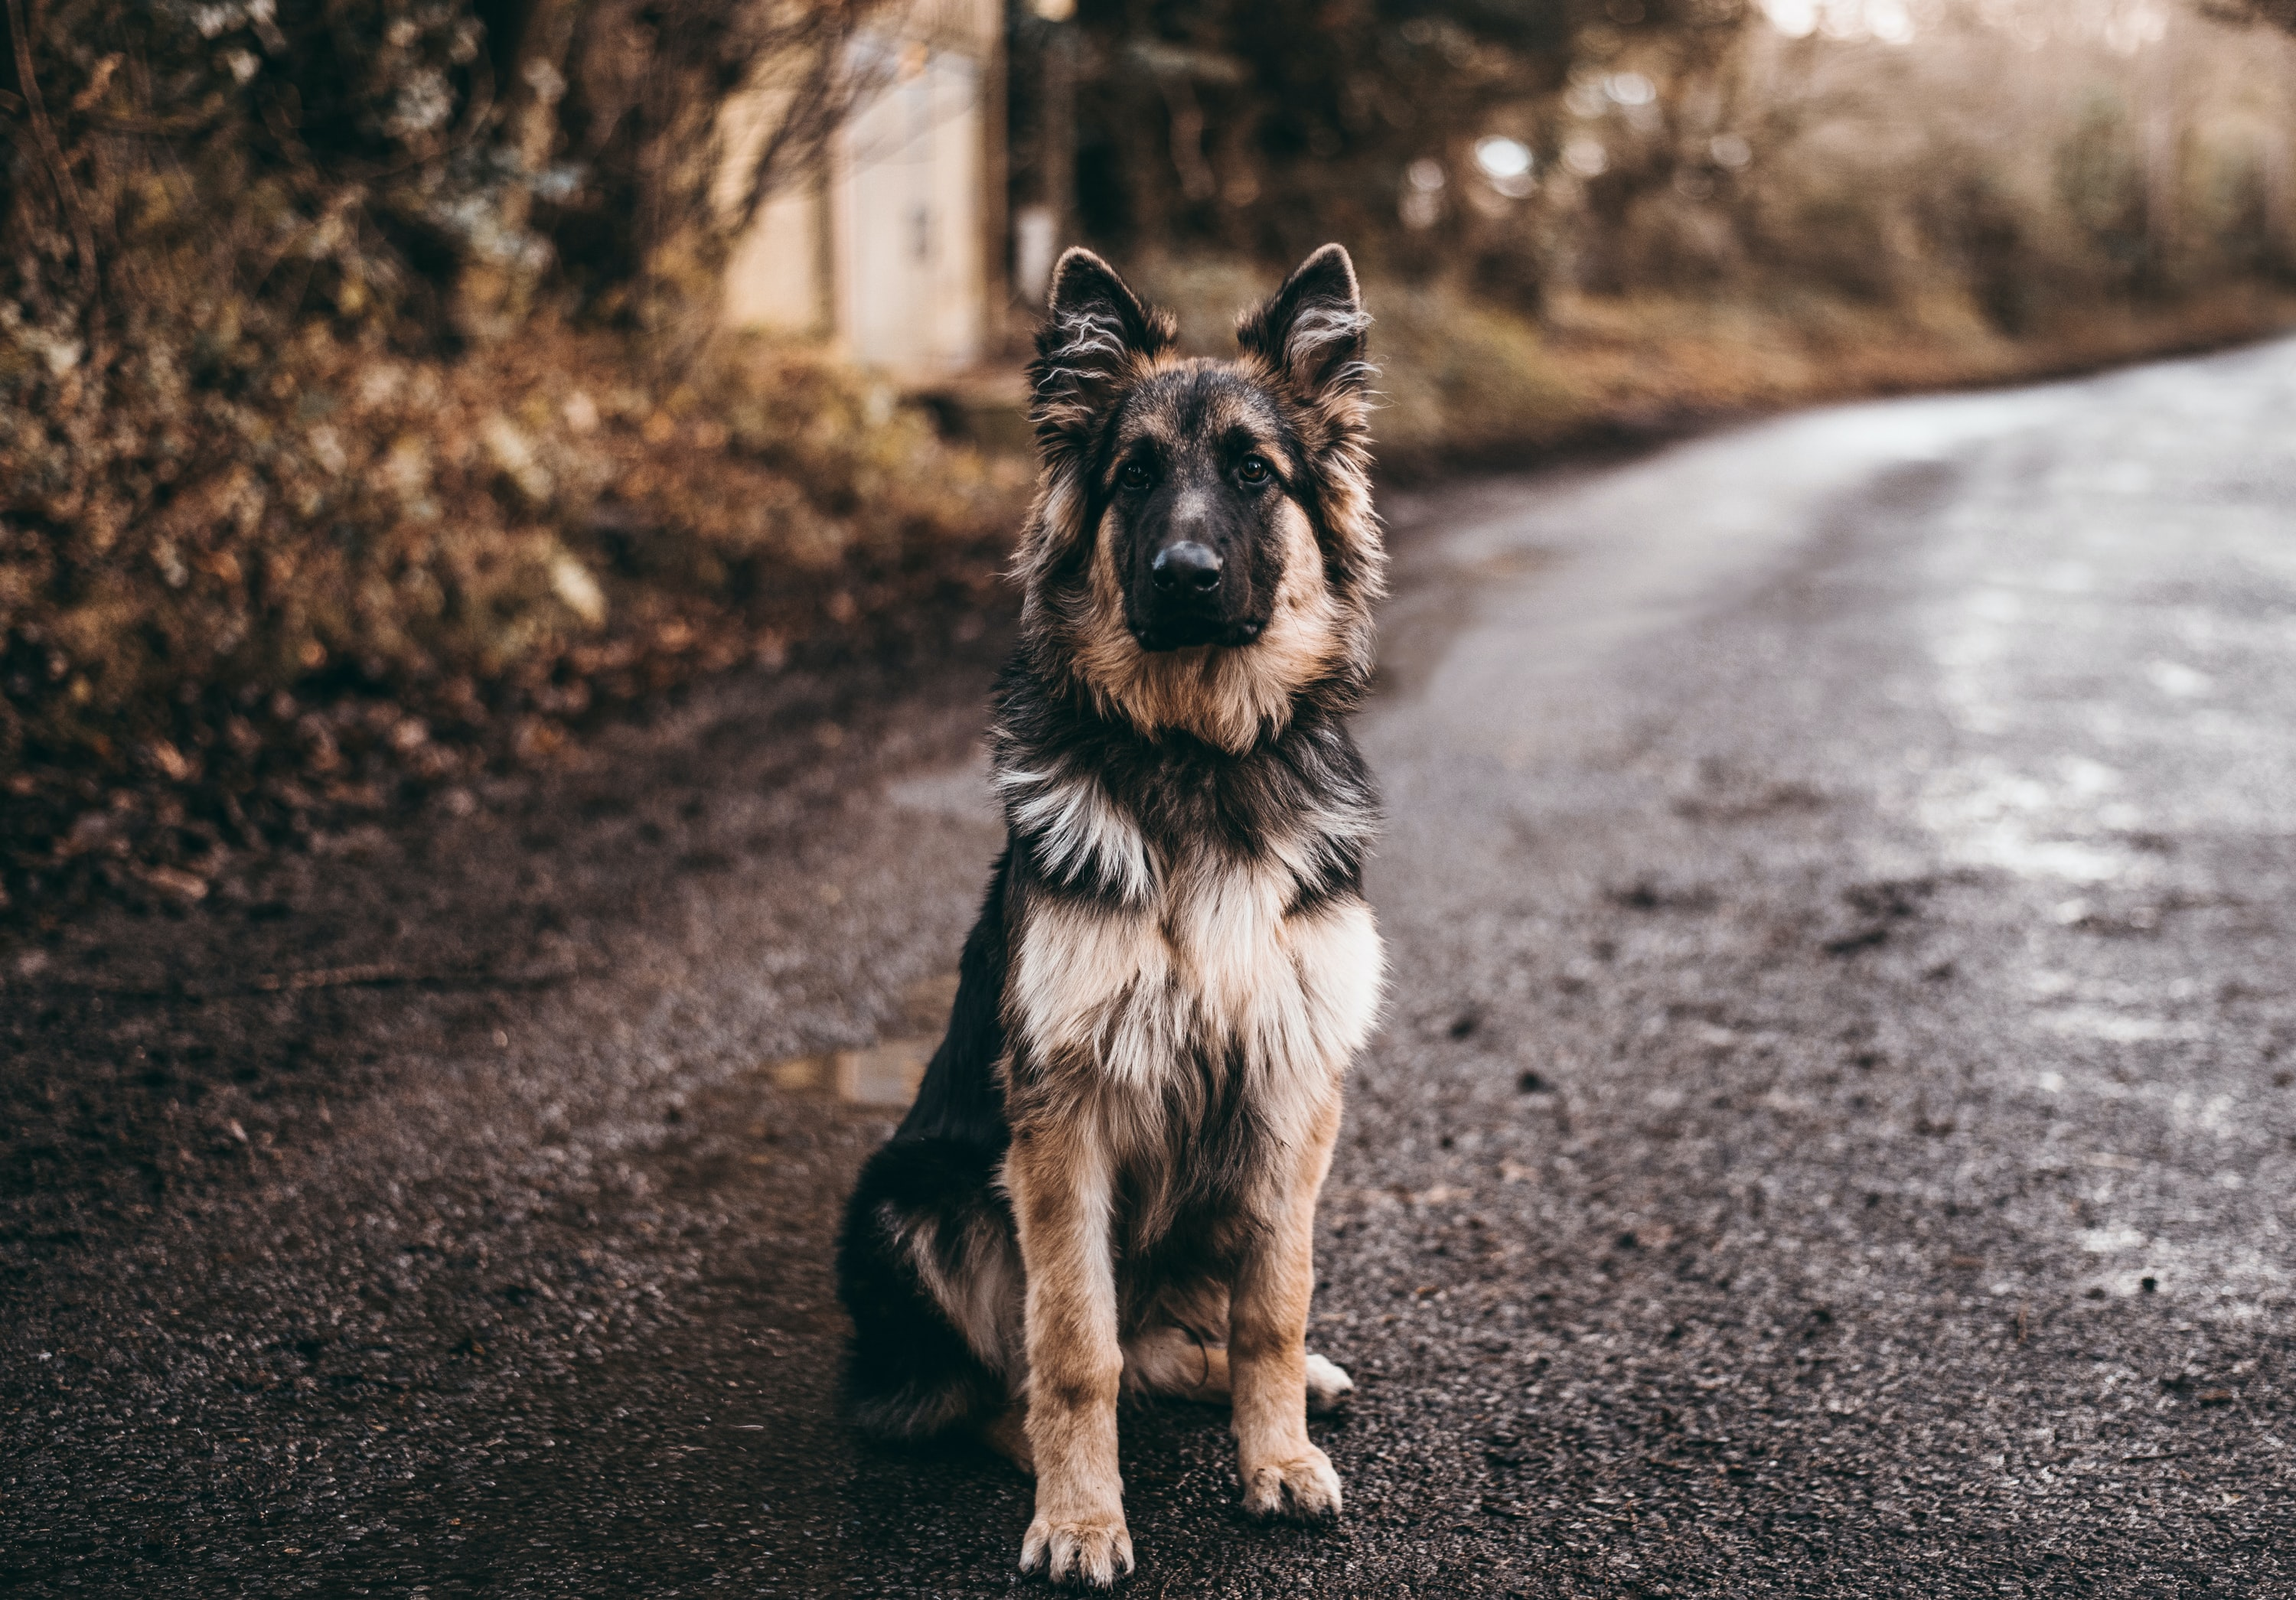 German shepherd sitting on road near bushes